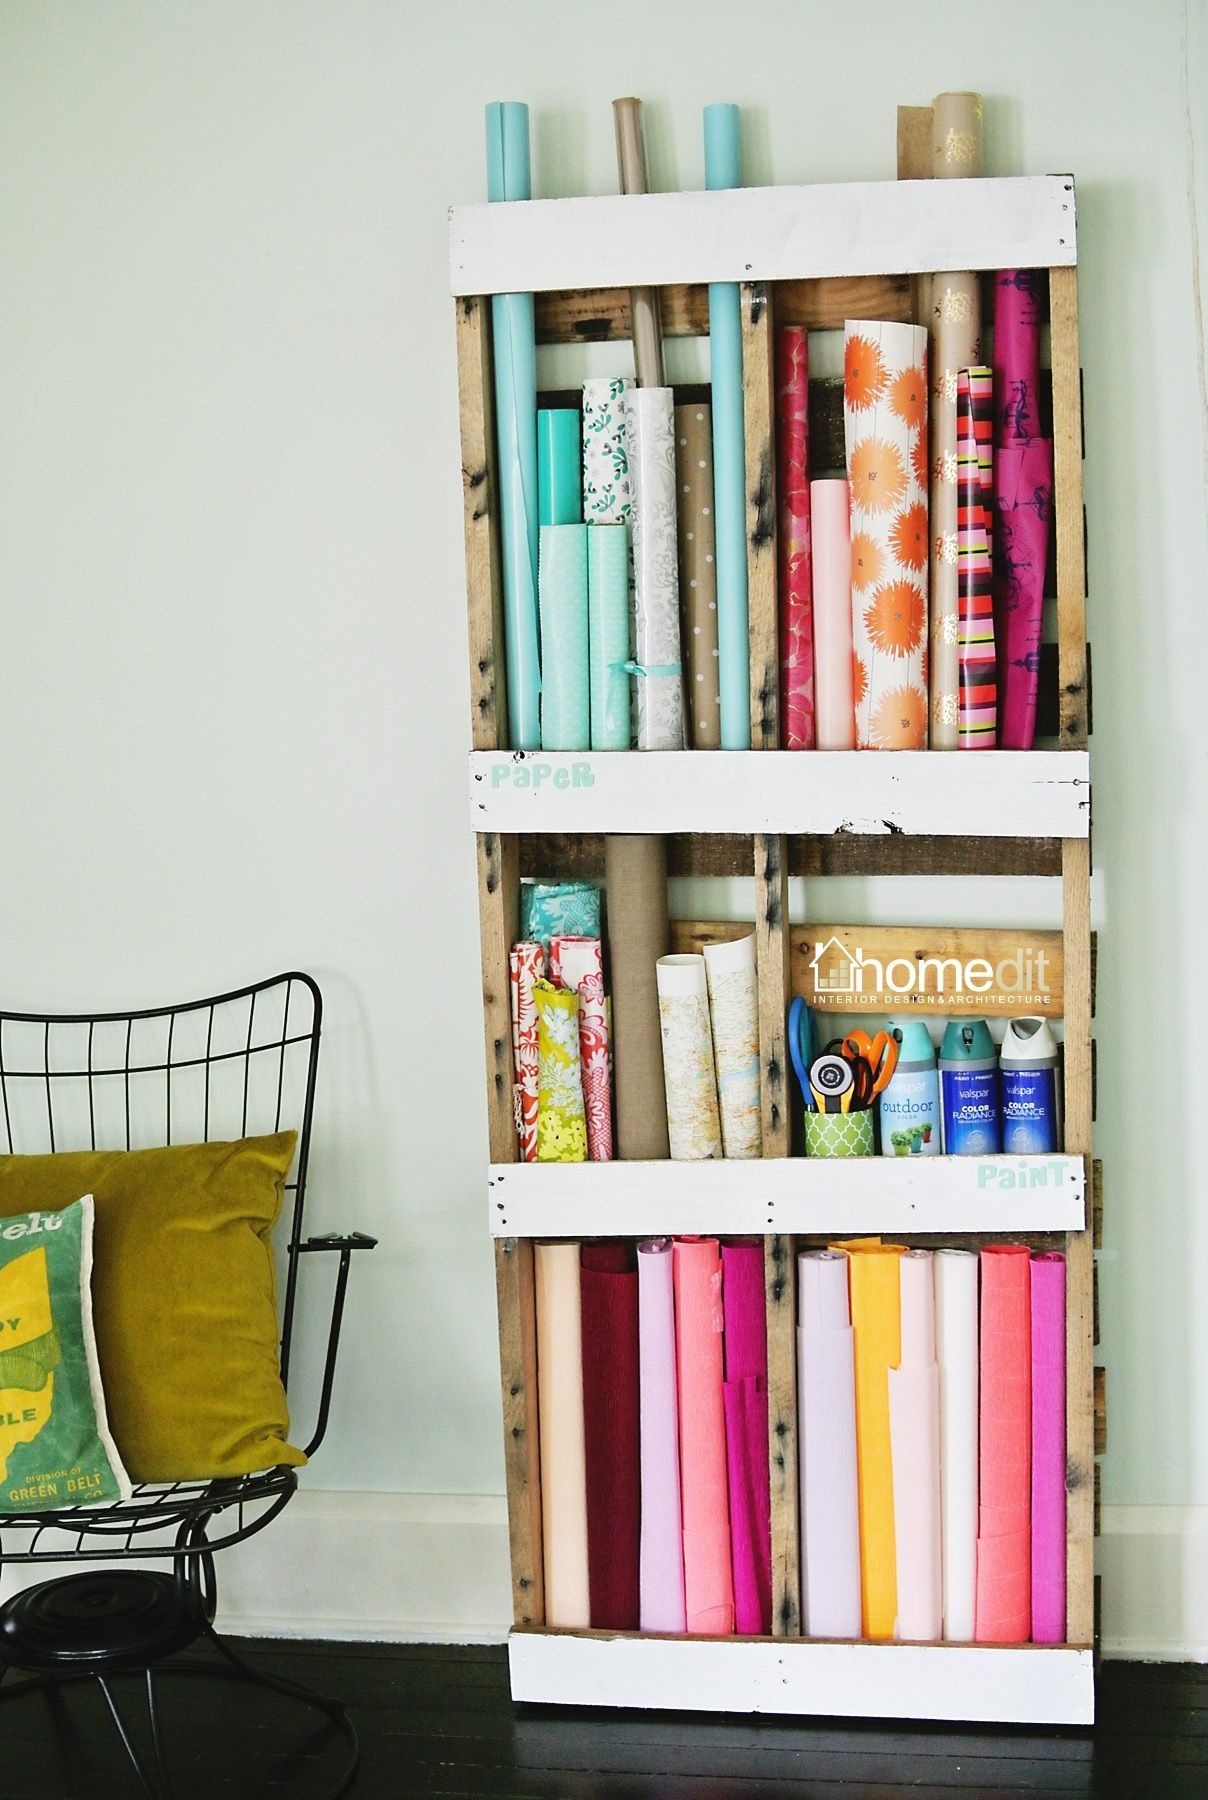 diy pallet storage shelving. Black Bedroom Furniture Sets. Home Design Ideas